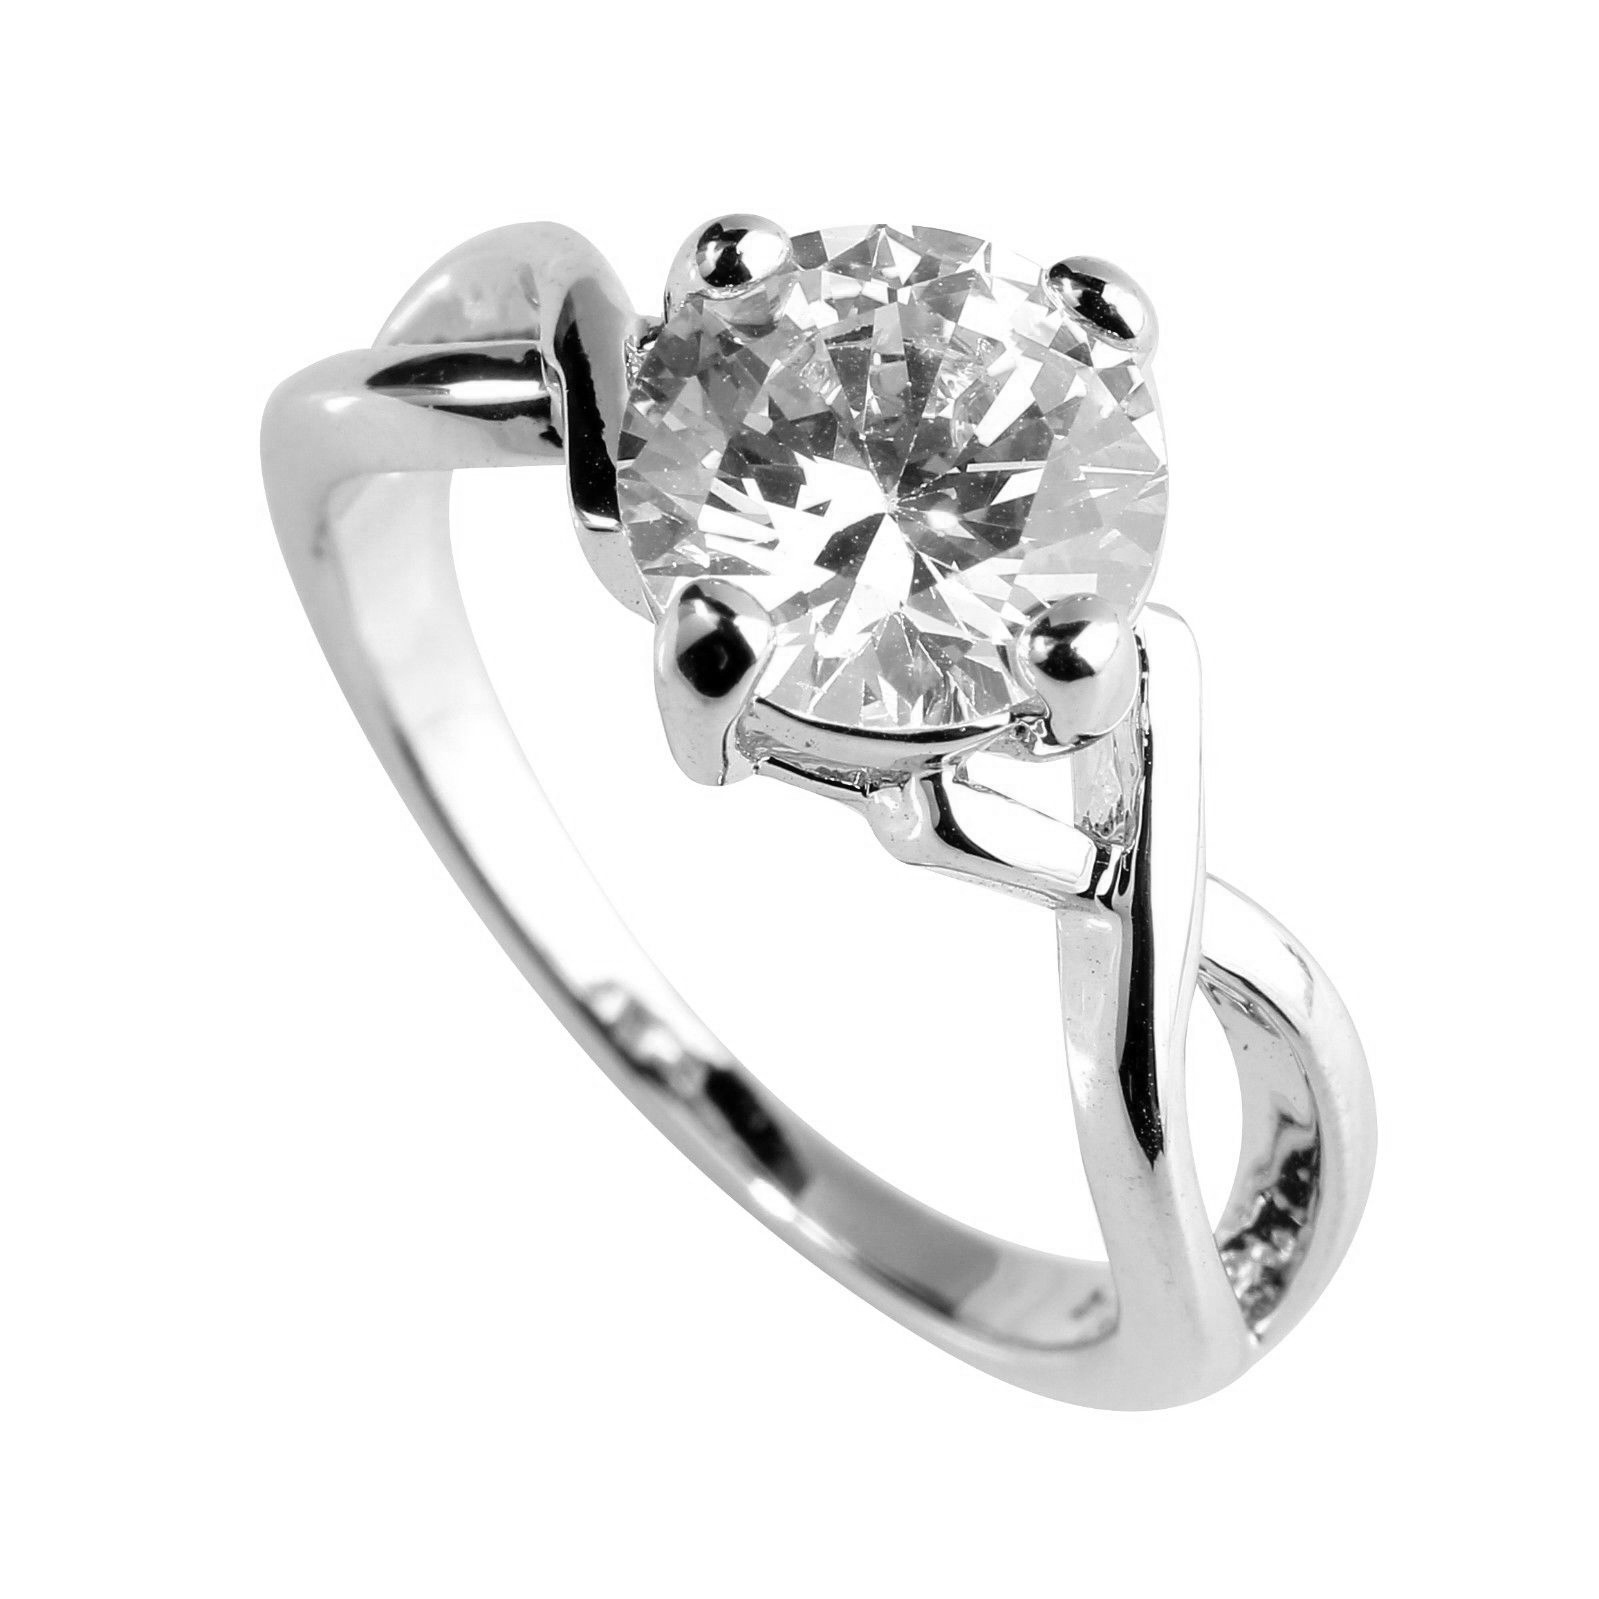 Cubic Zirconia 4 Claw Ring Silver Size 7